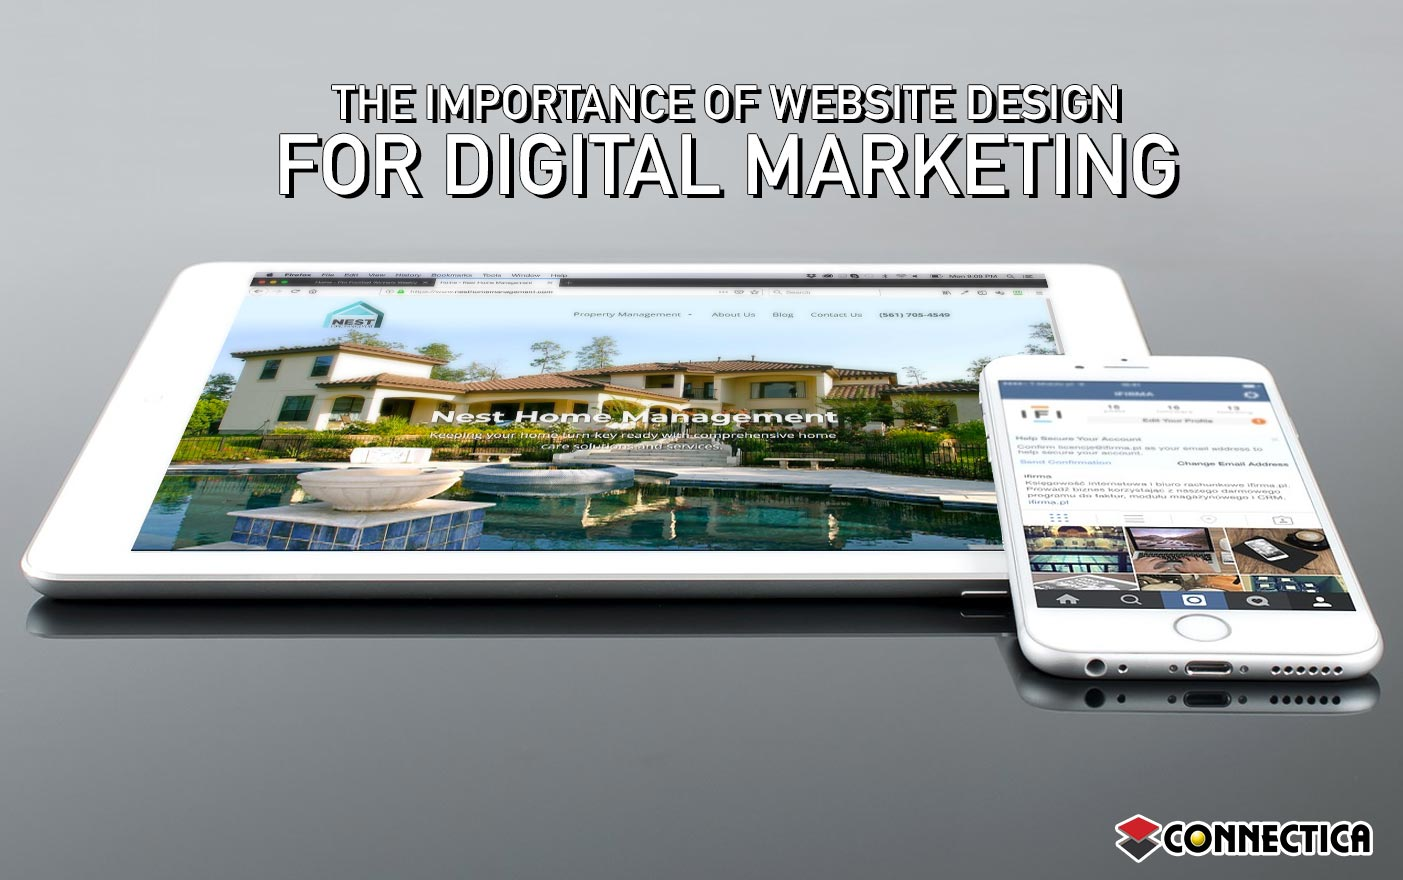 web design for digital marketing